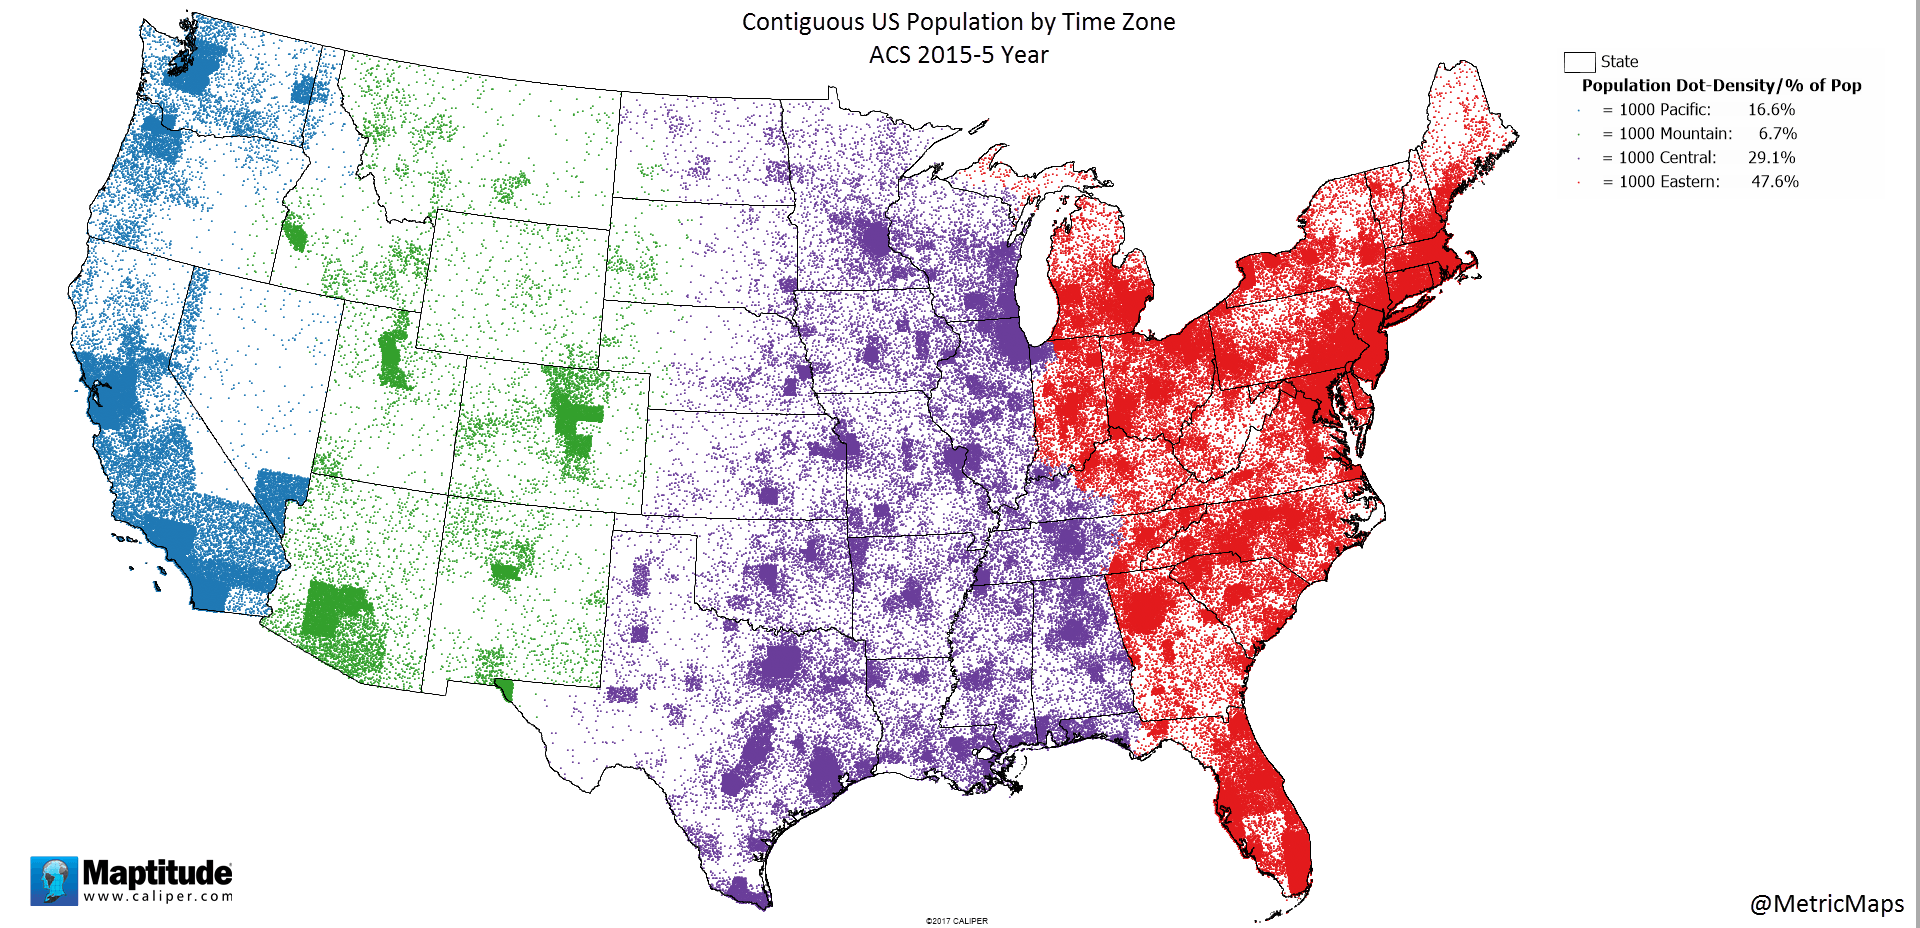 united states time zone map 2017 Contiguous Us Population By Time Zone Time Zones Map Eastern